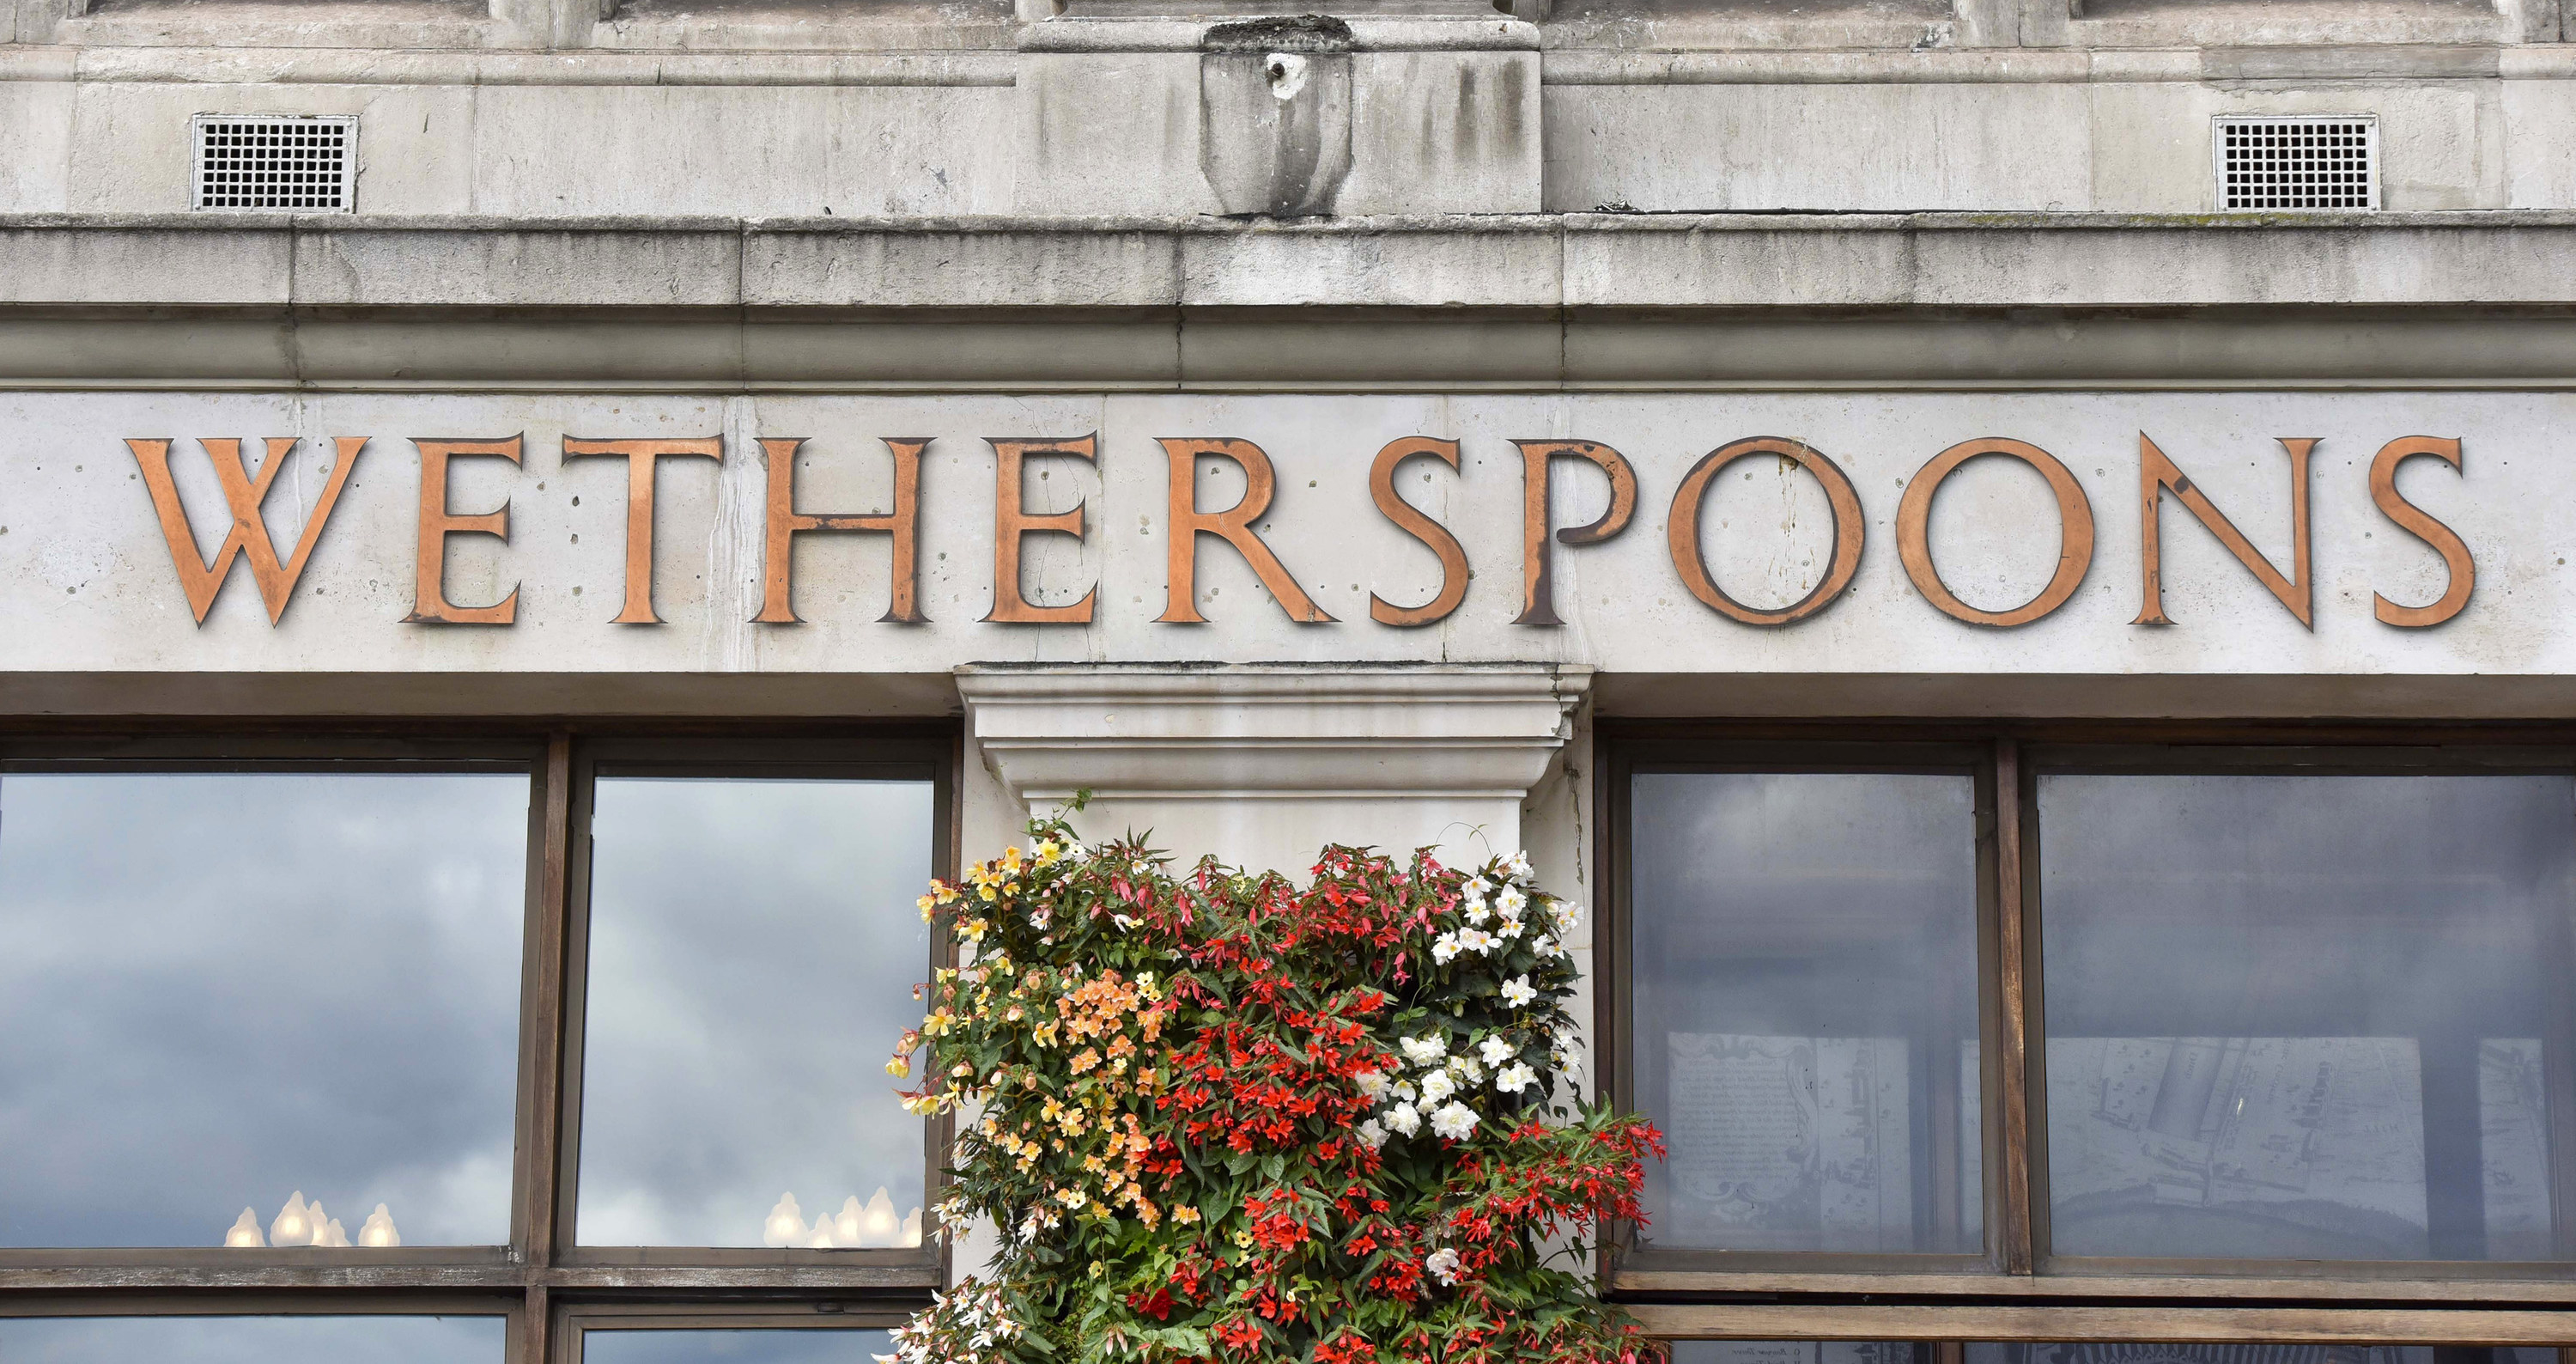 Wetherspoons in London